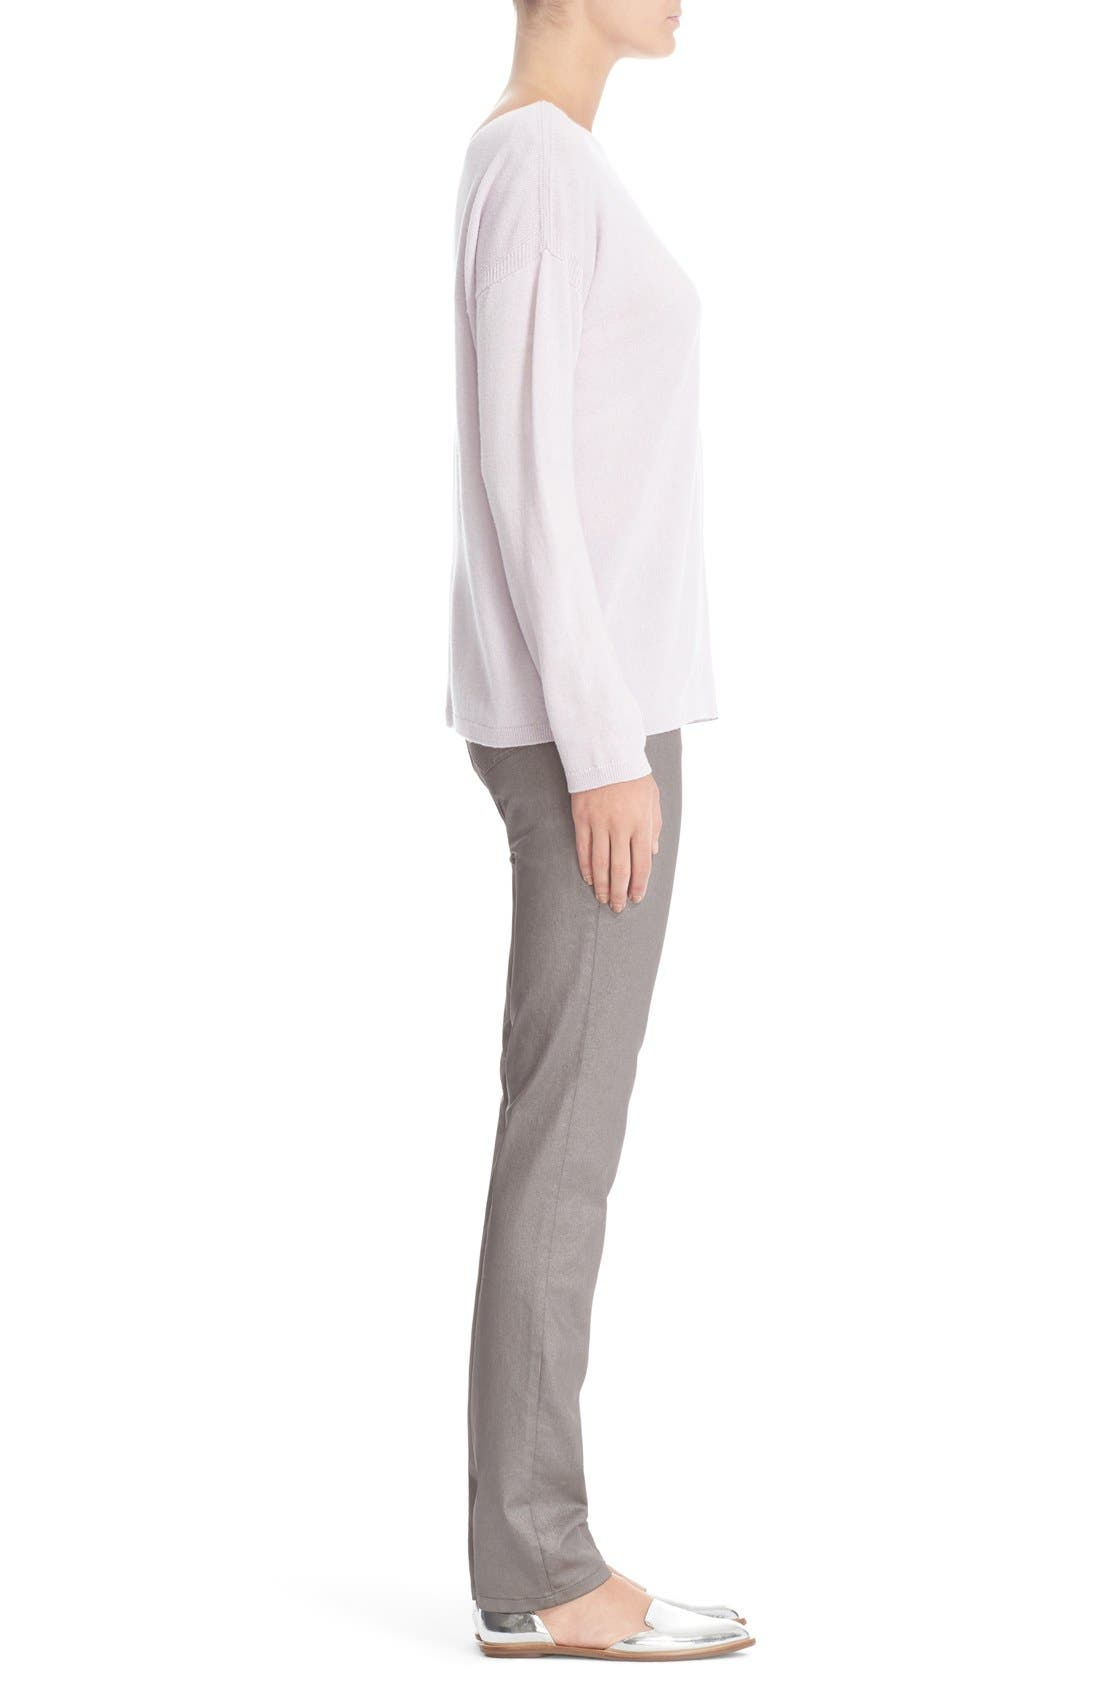 LAFAYETTE 148 NEW YORK, Curvy Fit Skinny Jeans, Alternate thumbnail 8, color, SILVER